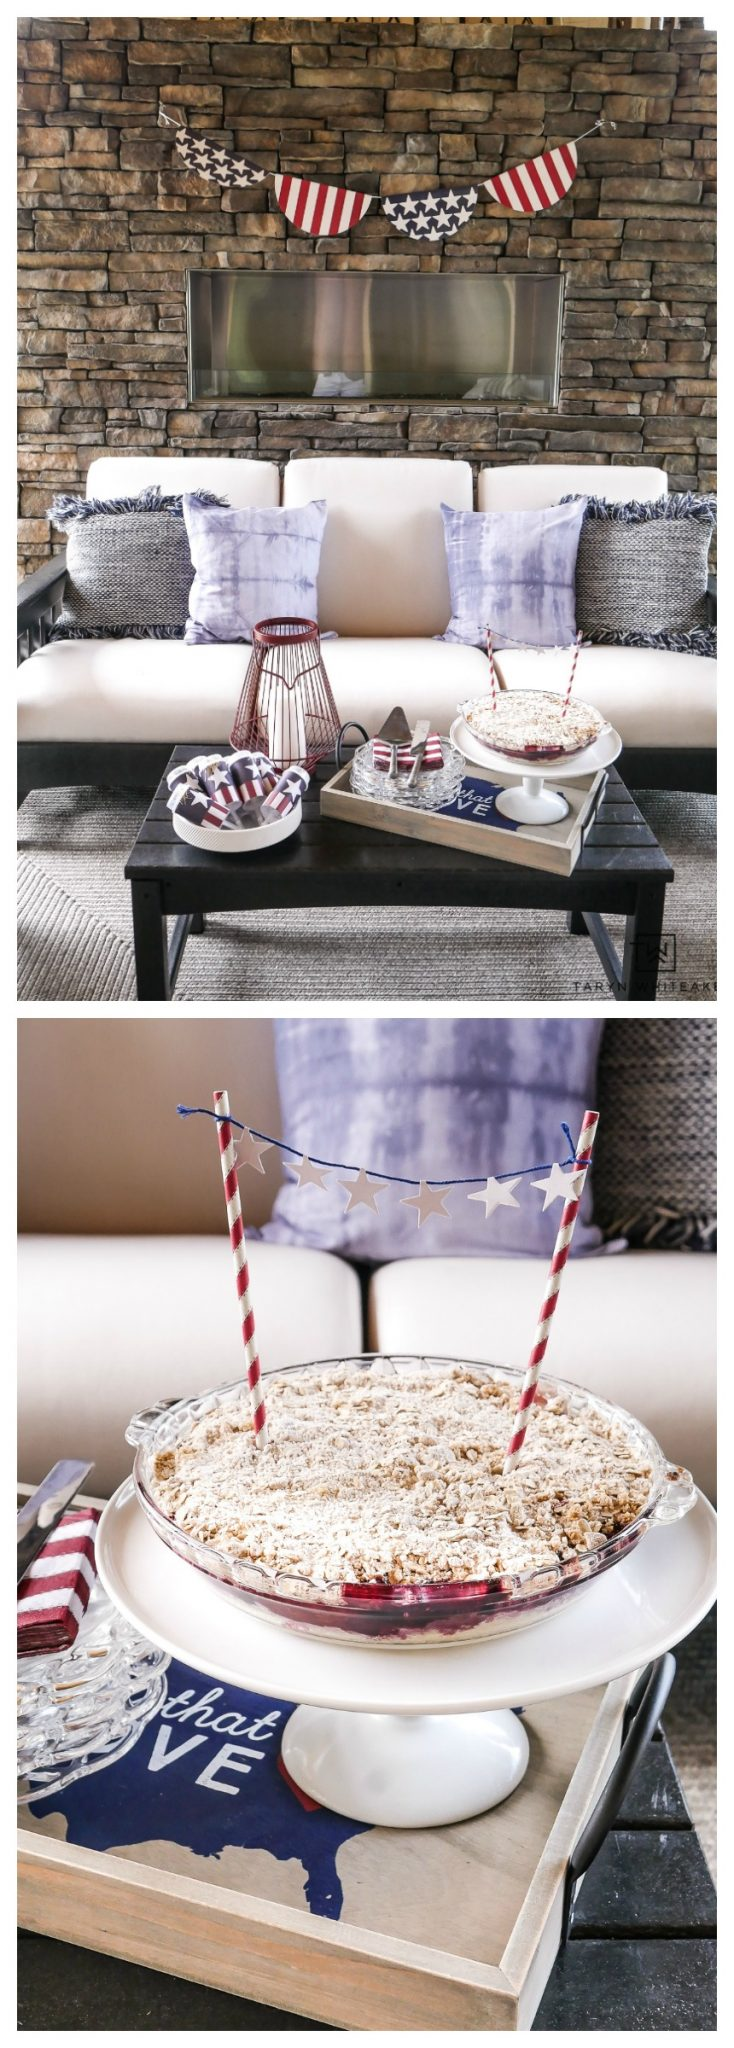 Learn how to add simple fourth of July decorations to your home with some navy throw pillows and coffee table decor.